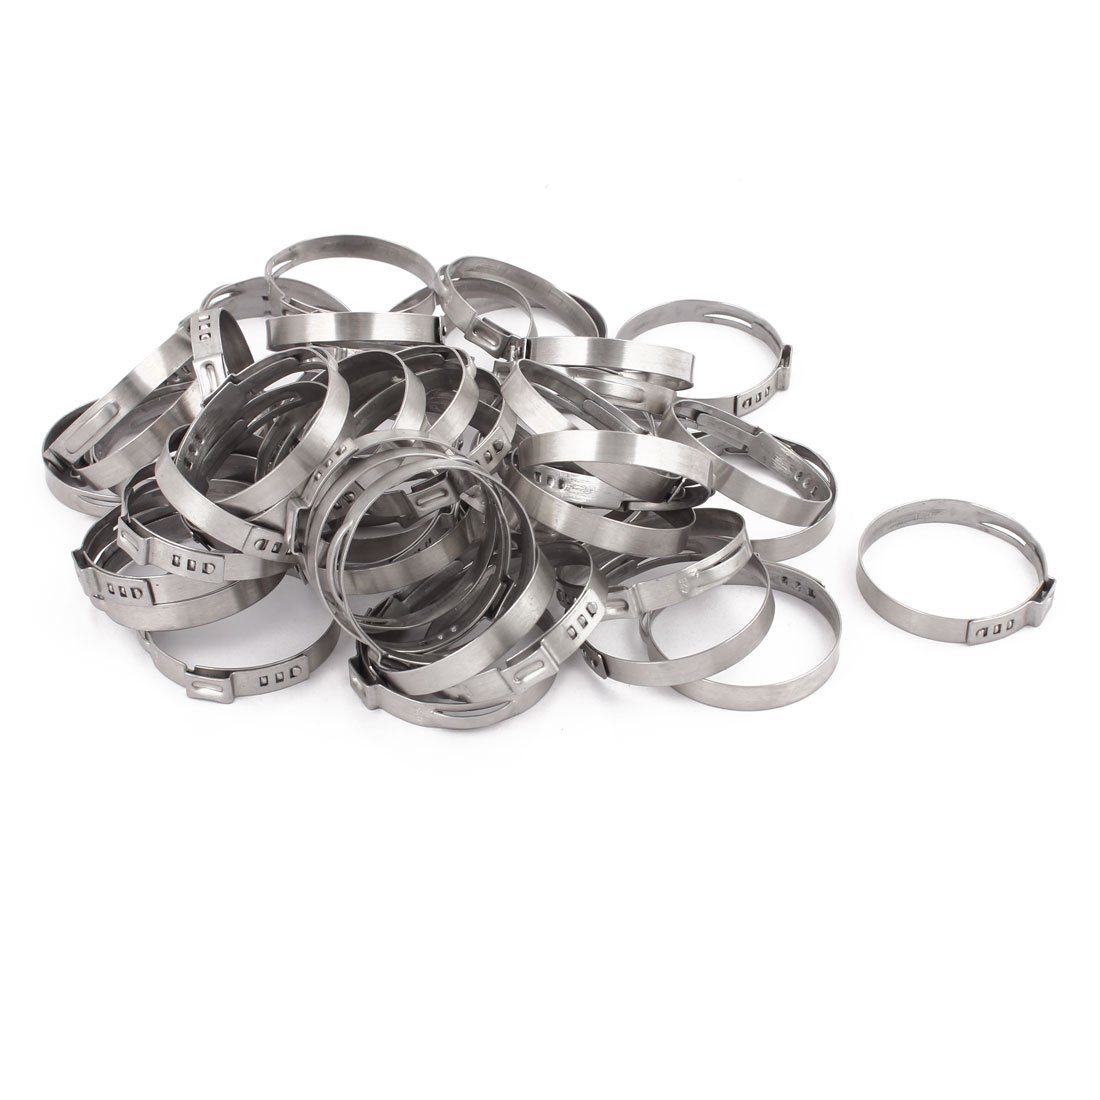 uxcell 39.3mm-42.5mm 304 Stainless Steel Adjustable Tube Hose Clamps Silver Tone 50pcs